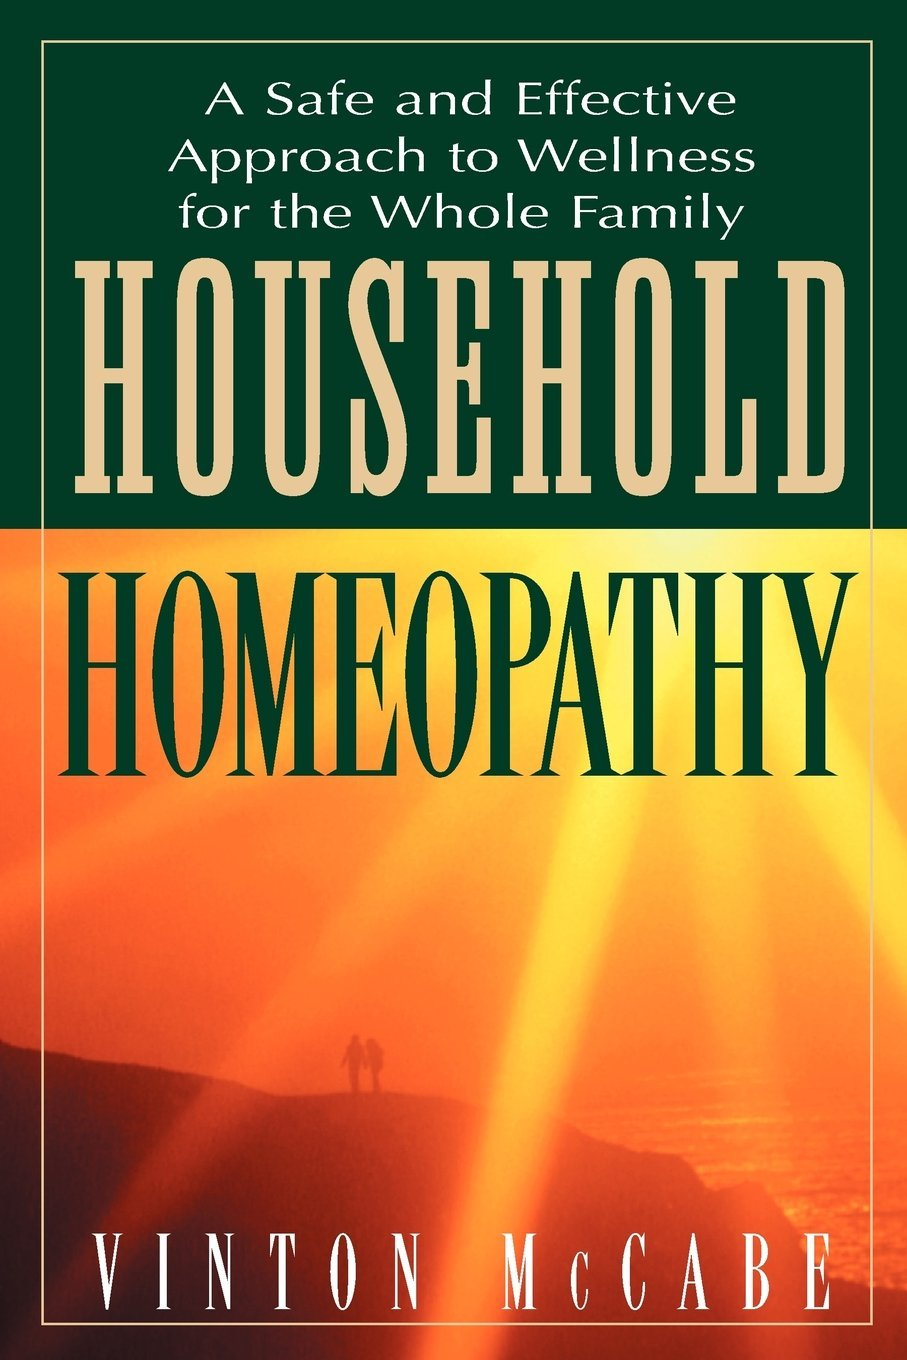 Download Household Homeopathy: A Safe and Effective Approach to Wellness for the Whole Family PDF